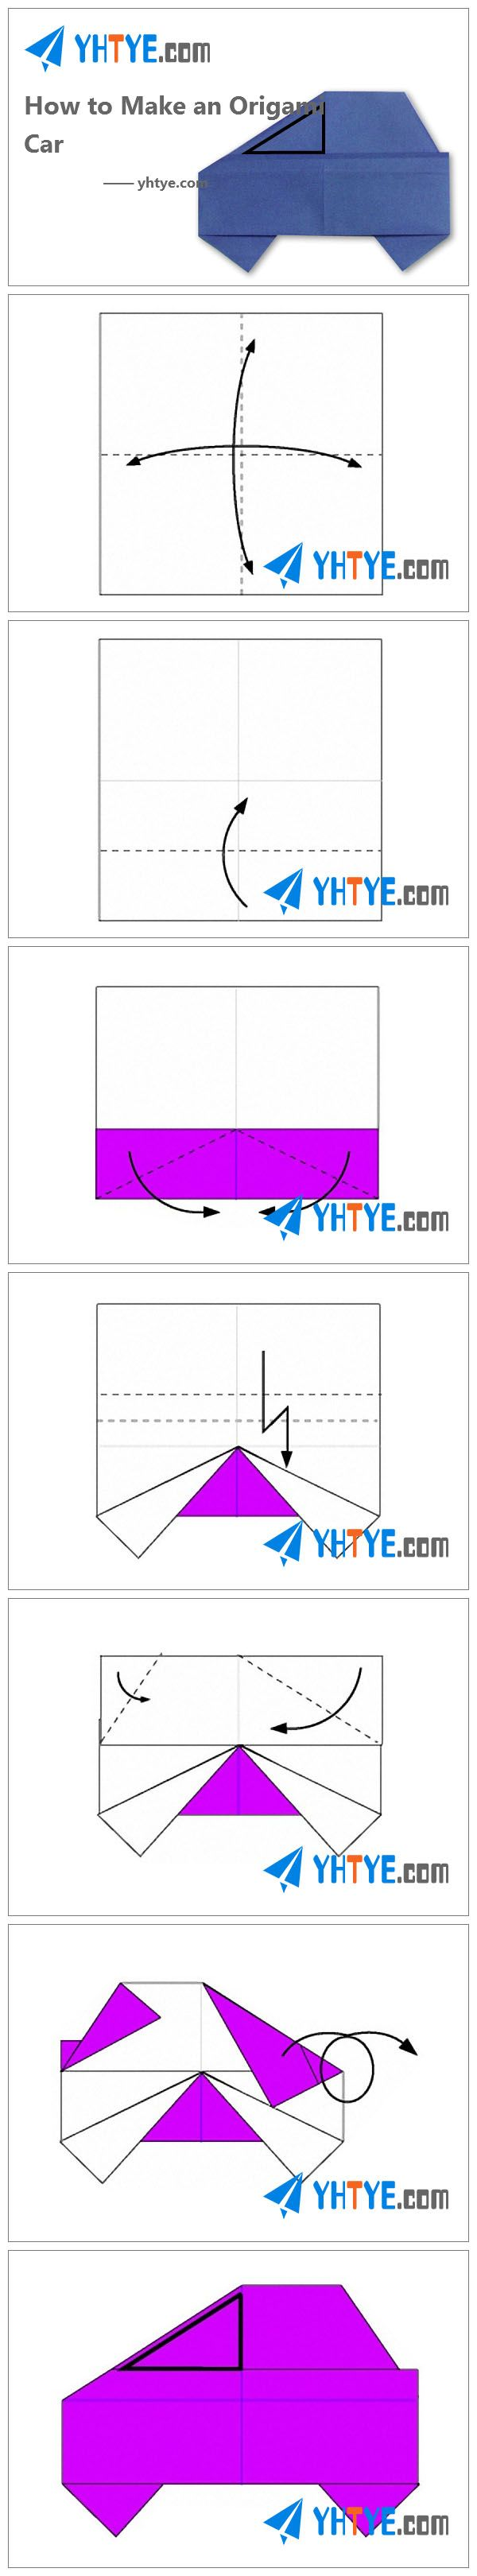 Best 25 origami car ideas on pinterest origami heart how to how to make an origami car jeuxipadfo Choice Image